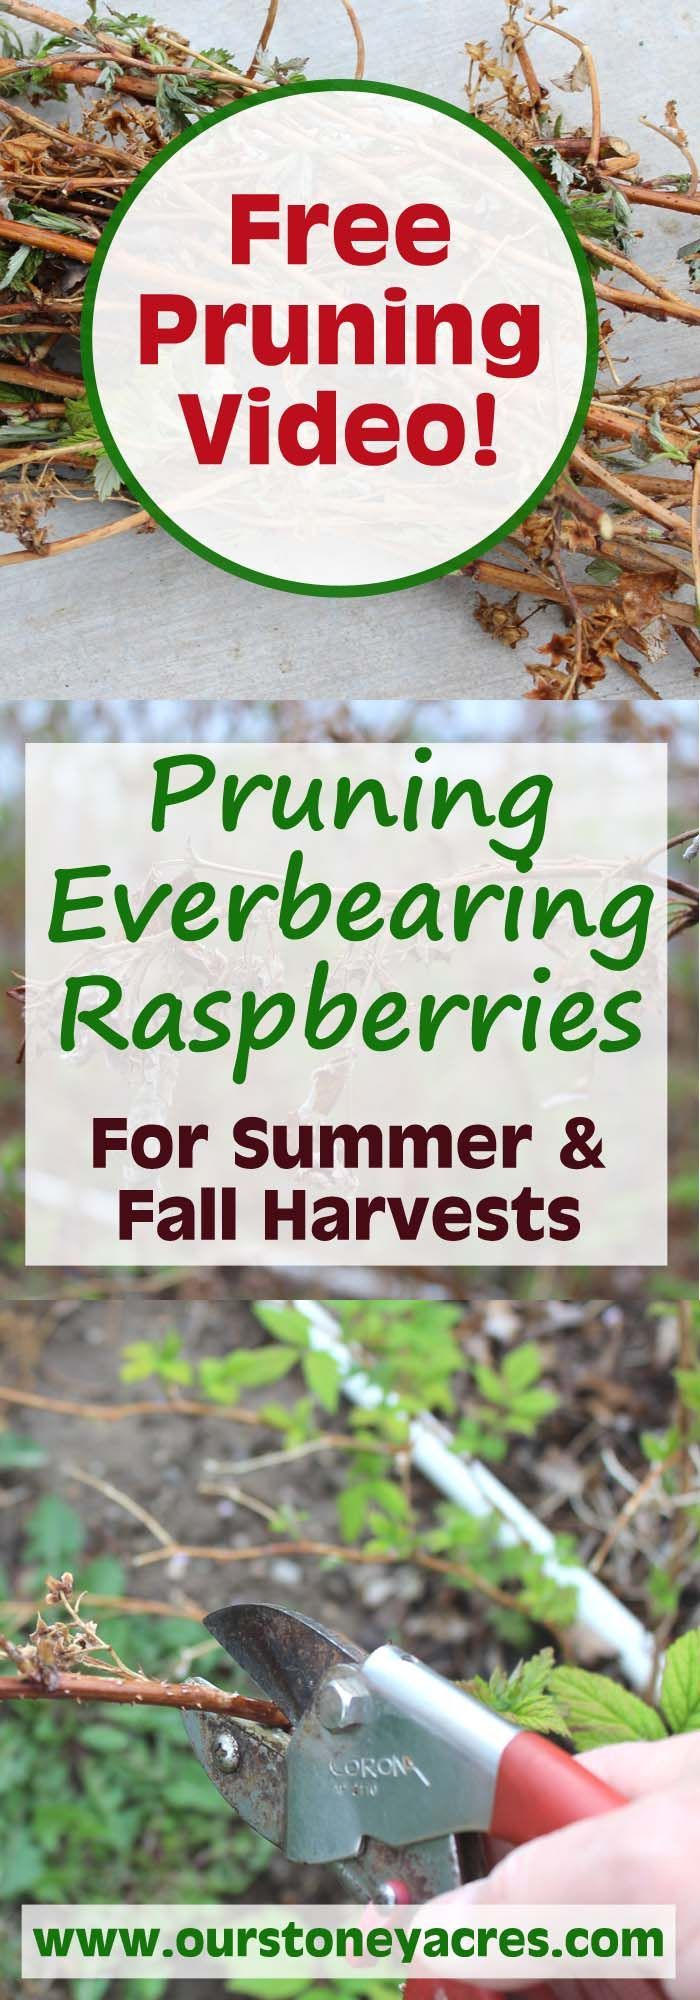 My raspberry patch is on my mind this time of year.  This pruning everbearing raspberries video demonstration will teach you how to prune everbearing raspberries for both a summer crop and a fall crop (or both!).